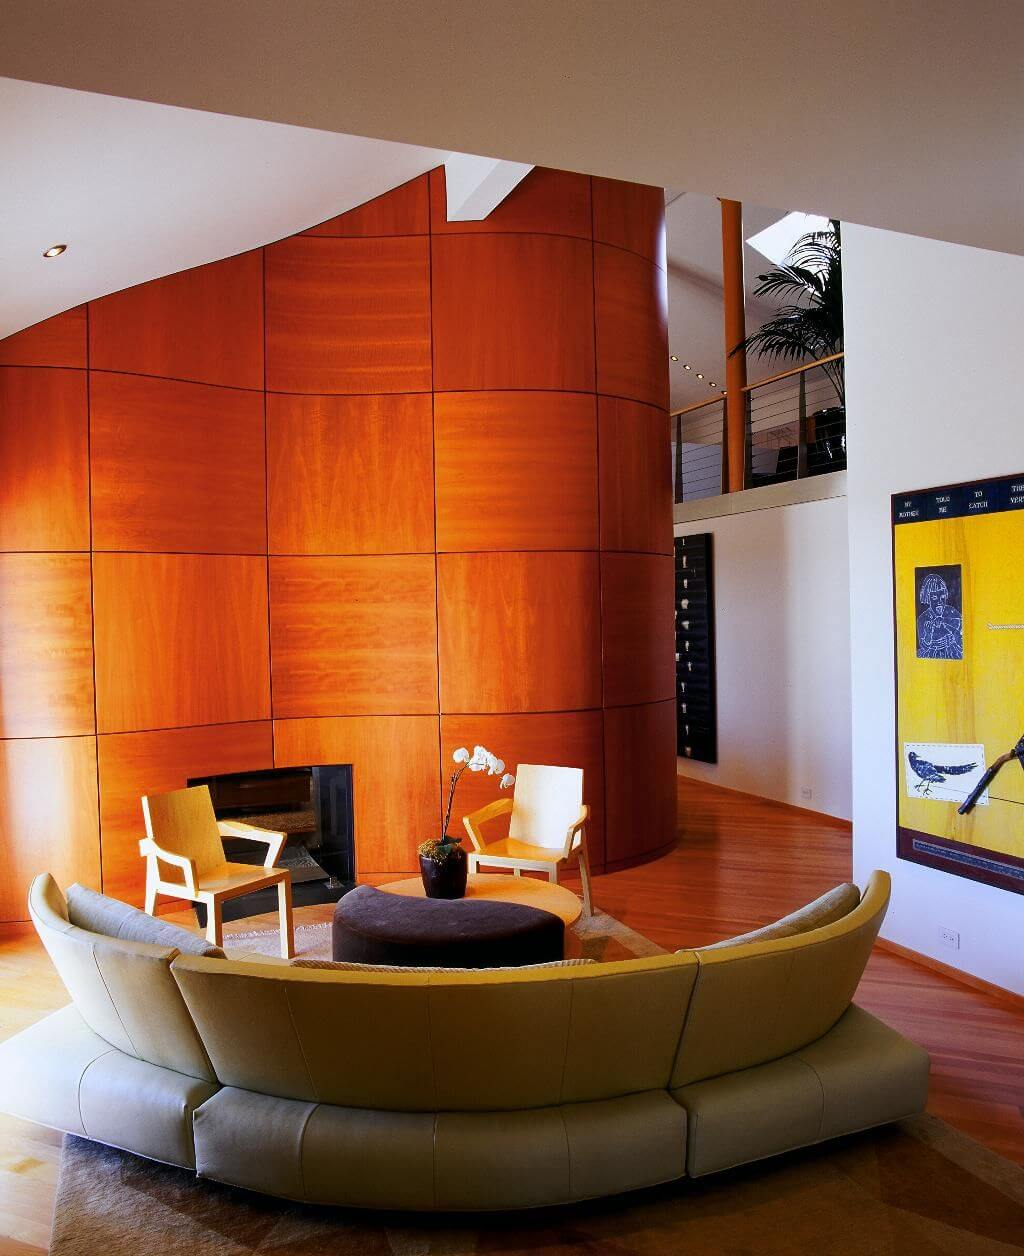 Modern semi-circular sectional couch wraps around yin-yang table in this living room flush with cherry wood, on flooring and large wave-shaped panel wall.